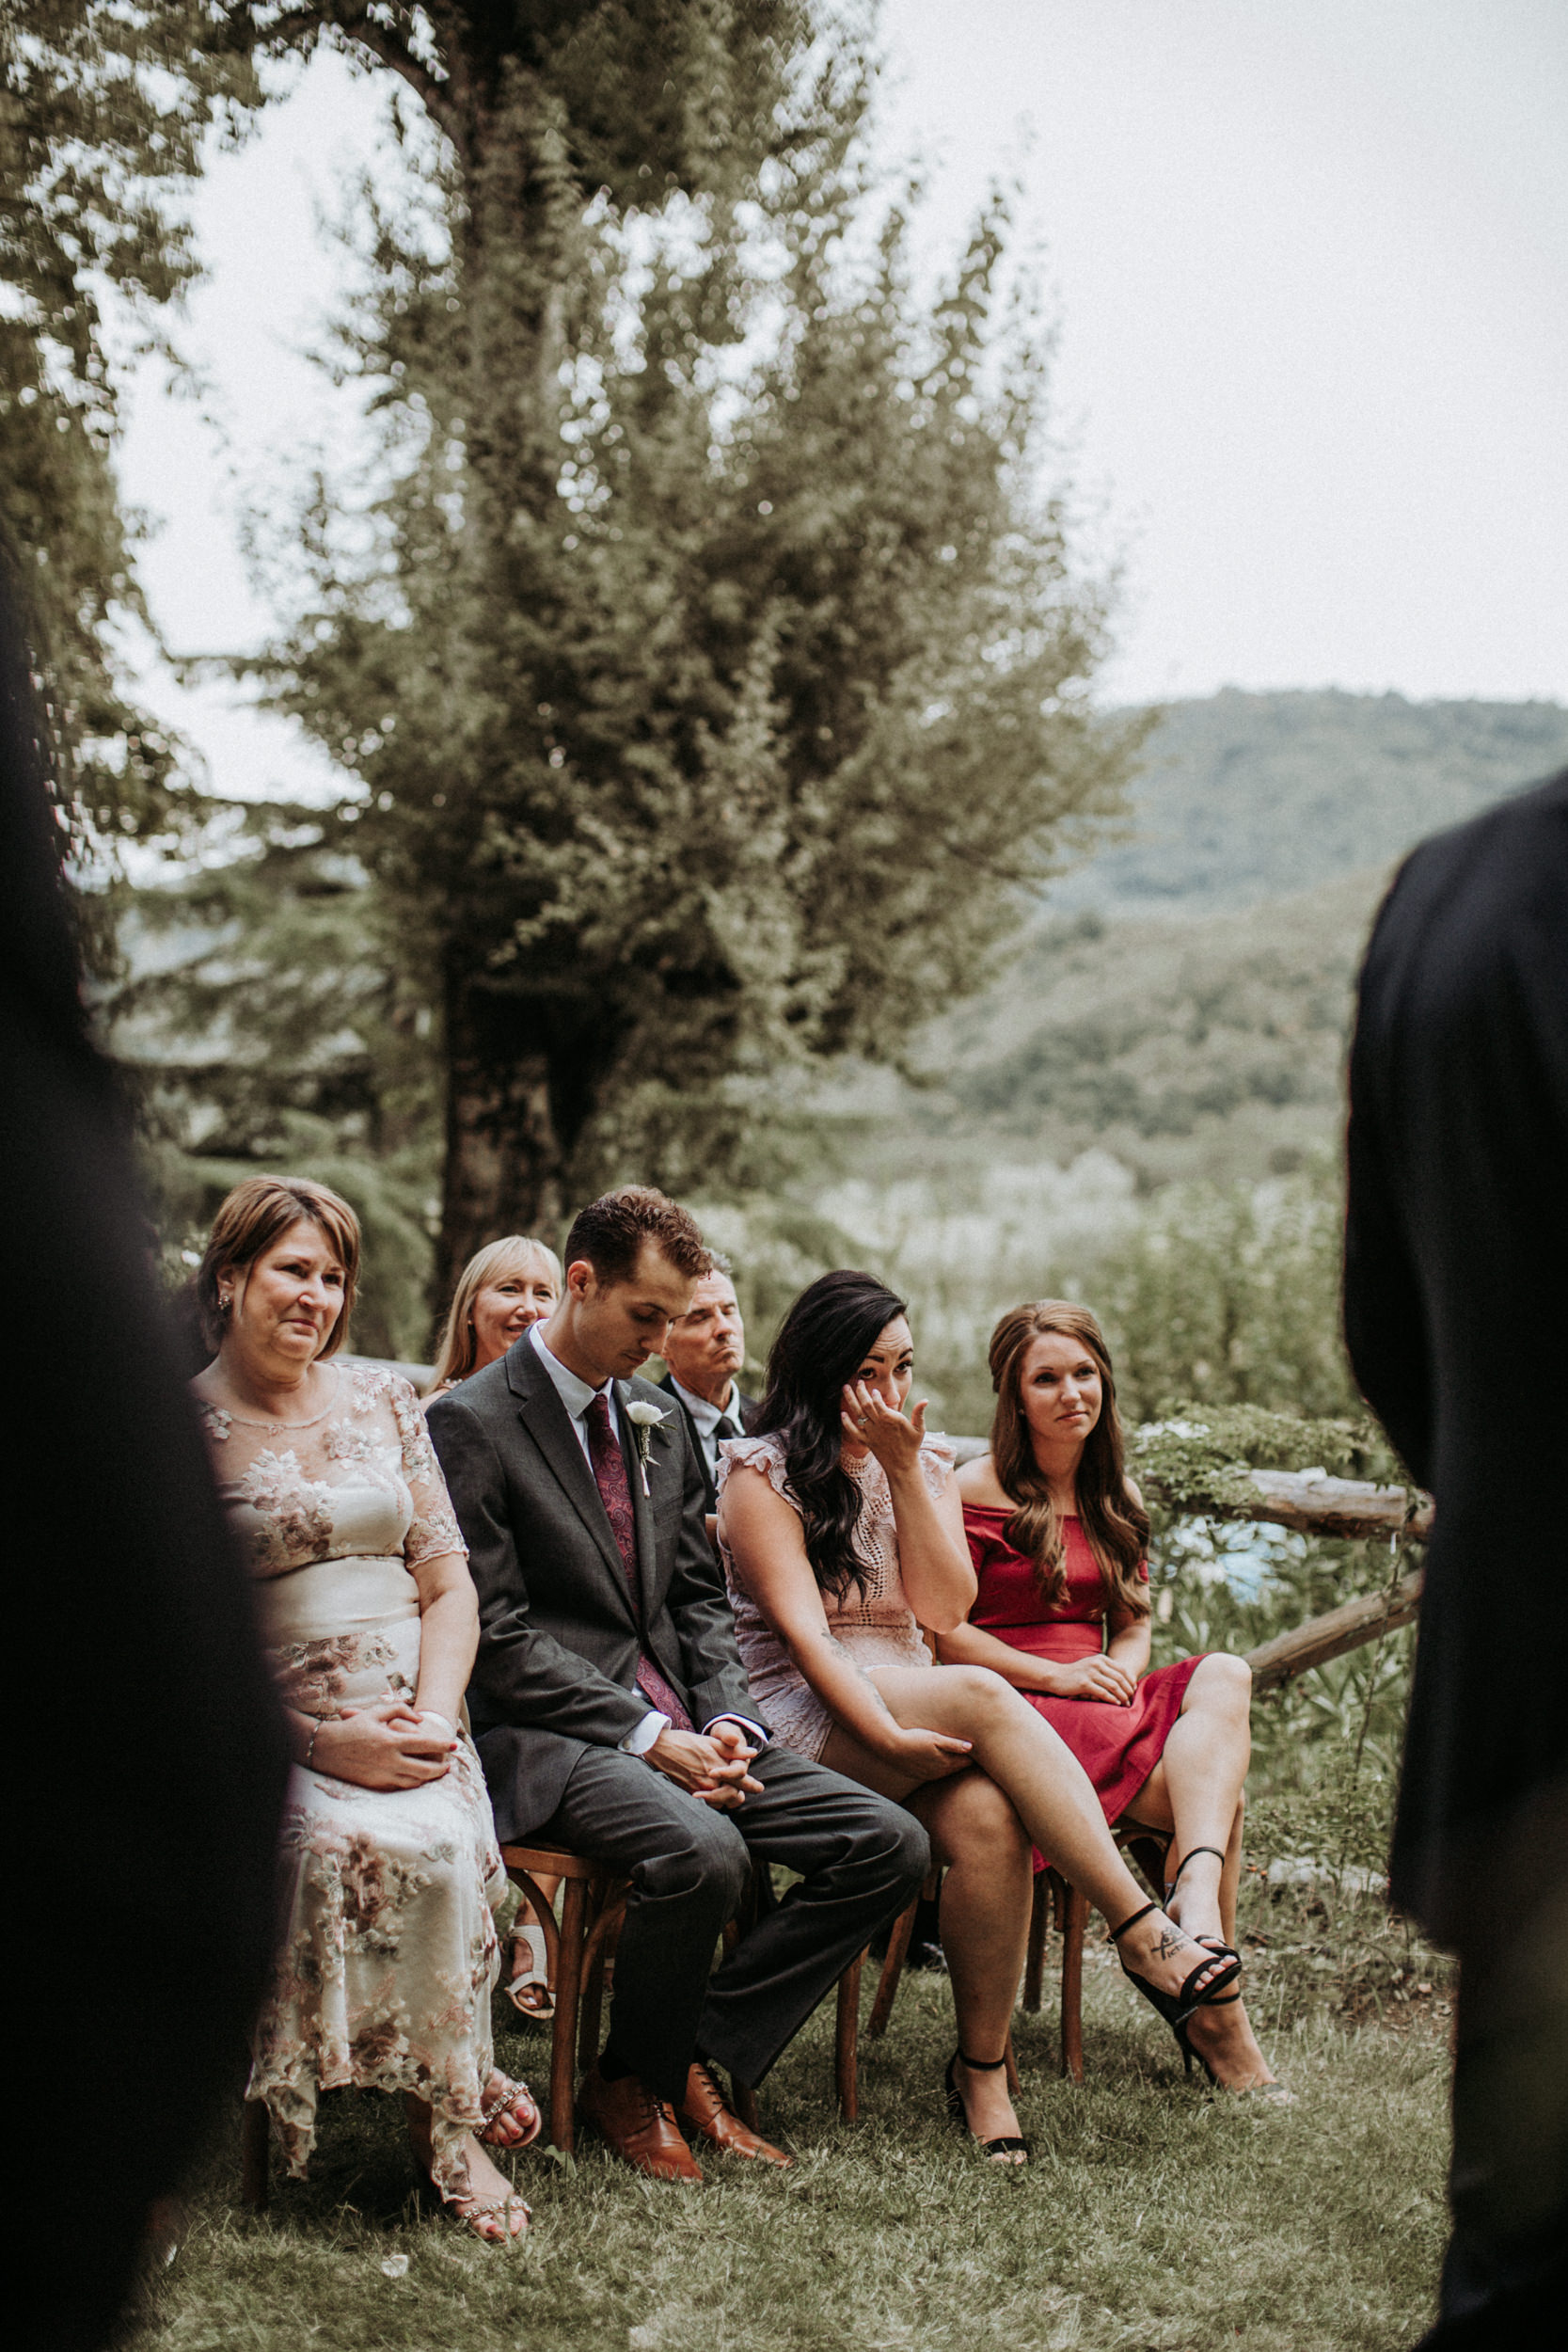 dm_photography_KW_Tuscanyweddingday_231